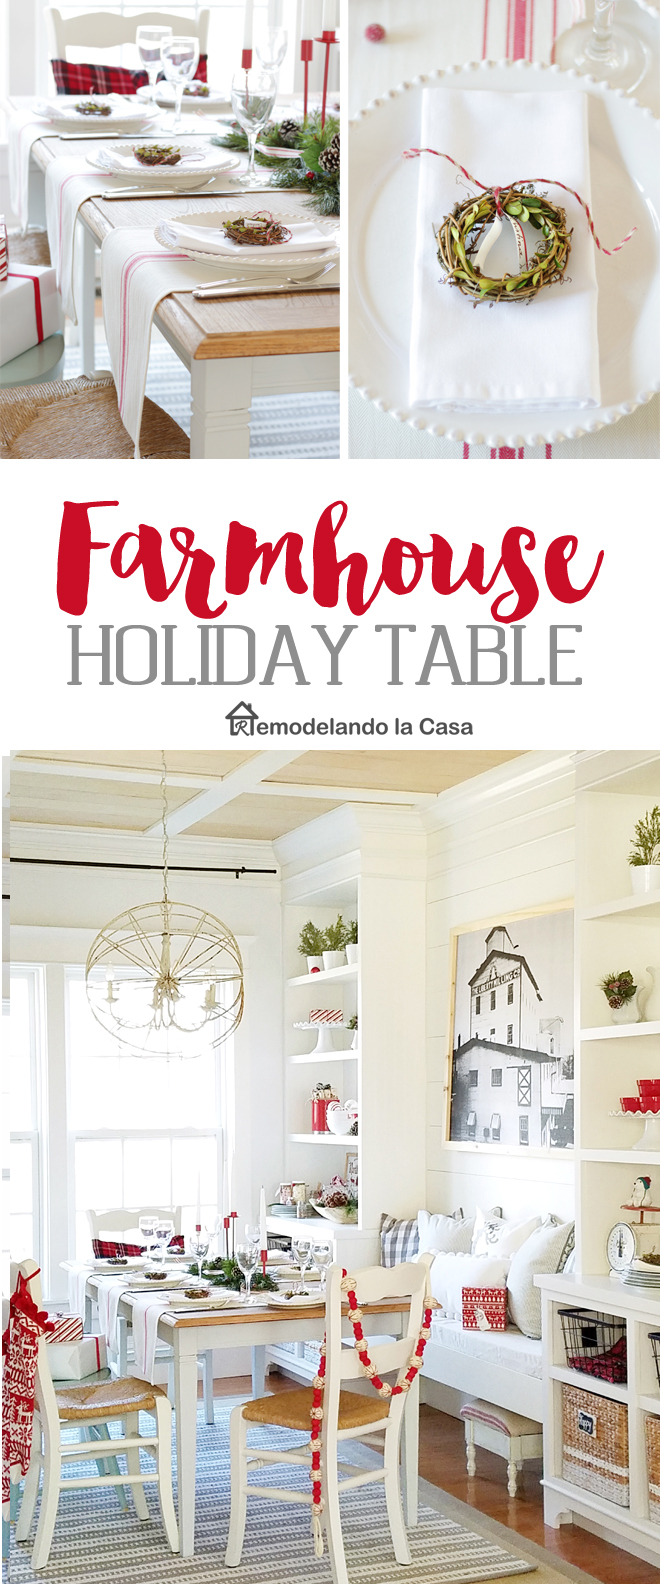 rustic, farmhouse dining room with tablescape in red and white with wooden tones and mini boxwood wreath place cards.